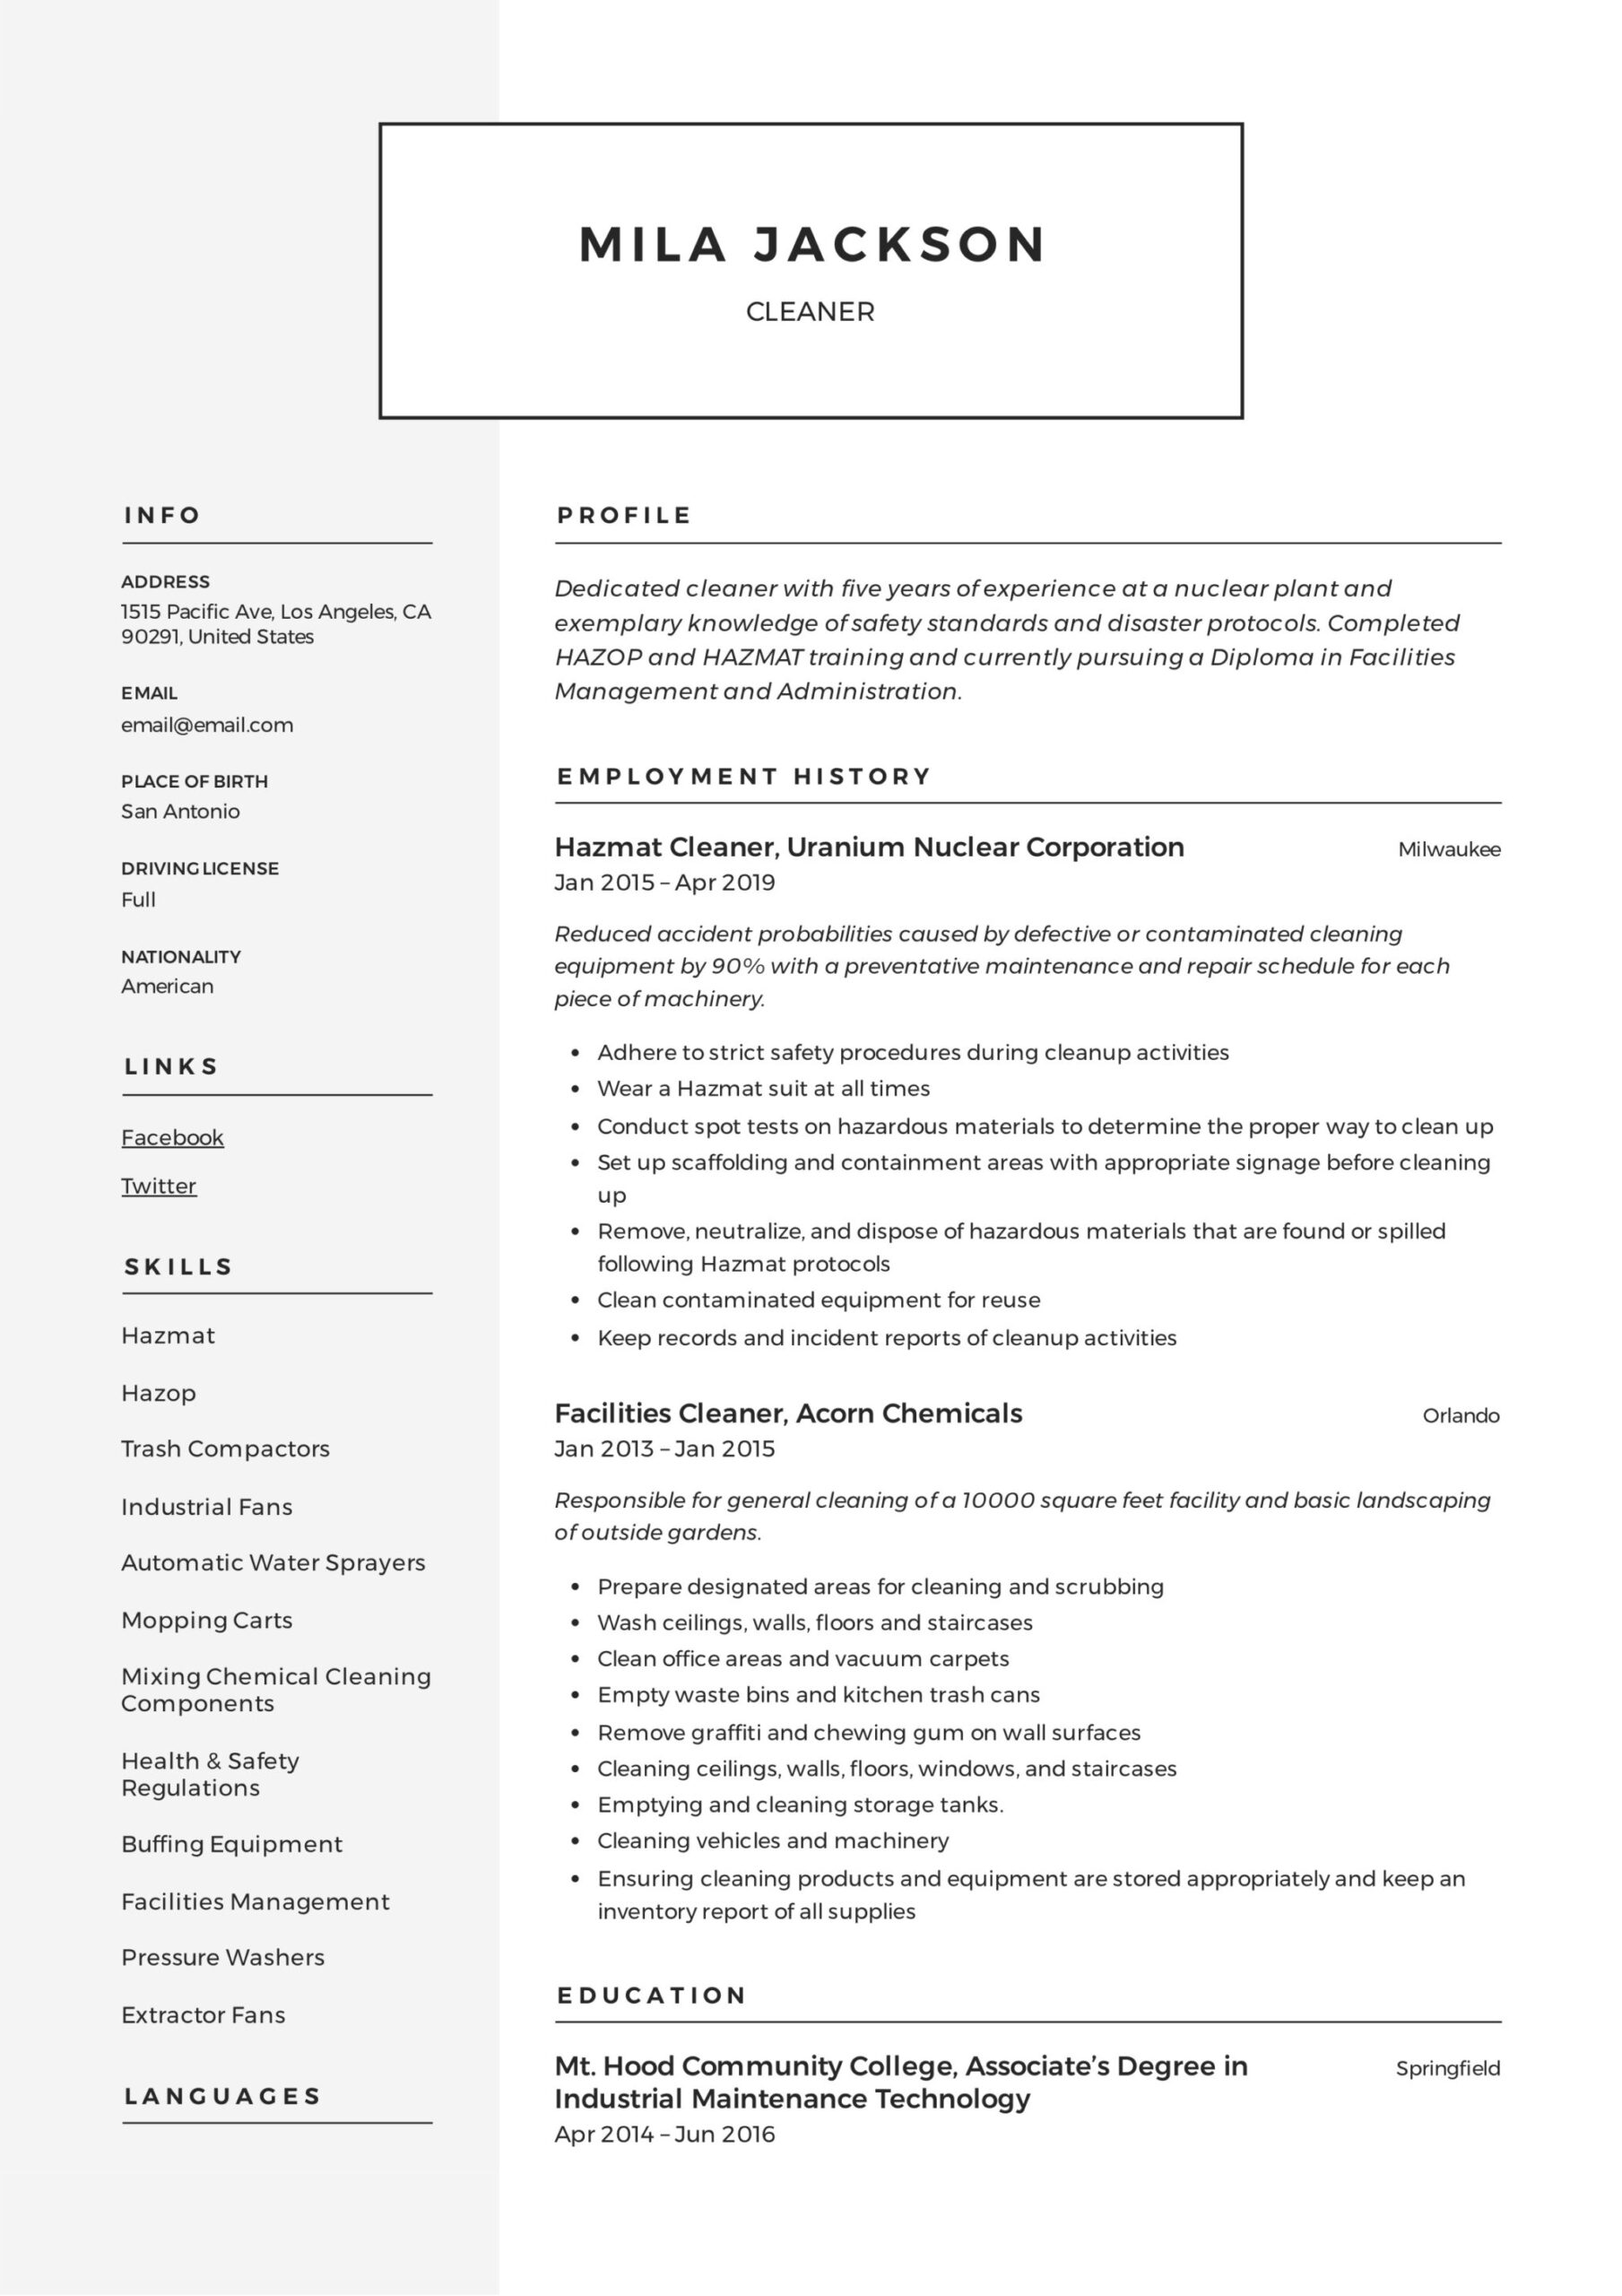 cleaner resume writing guide templates pdf hospital cleaning job sample mila project Resume Hospital Cleaning Job Resume Sample Pdf